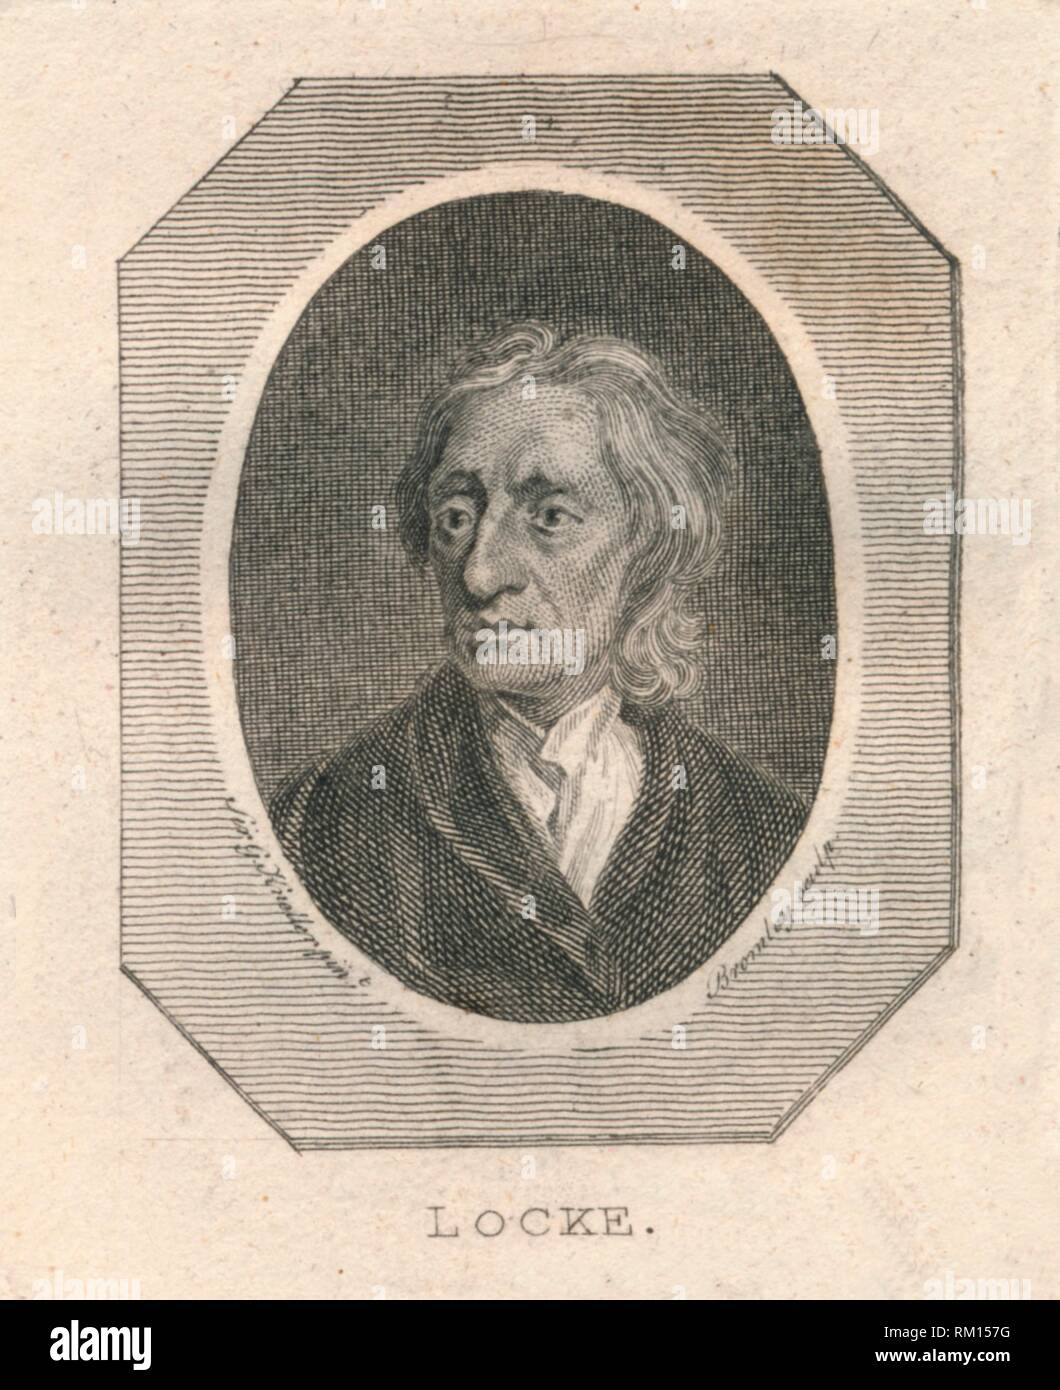 'Locke', c1800. Portrait of English physician and philosopher John Locke (1632-1704), regarded as one of the most influential of Enlightenment thinkers, commonly known as the 'Father of Liberalism'. - Stock Image